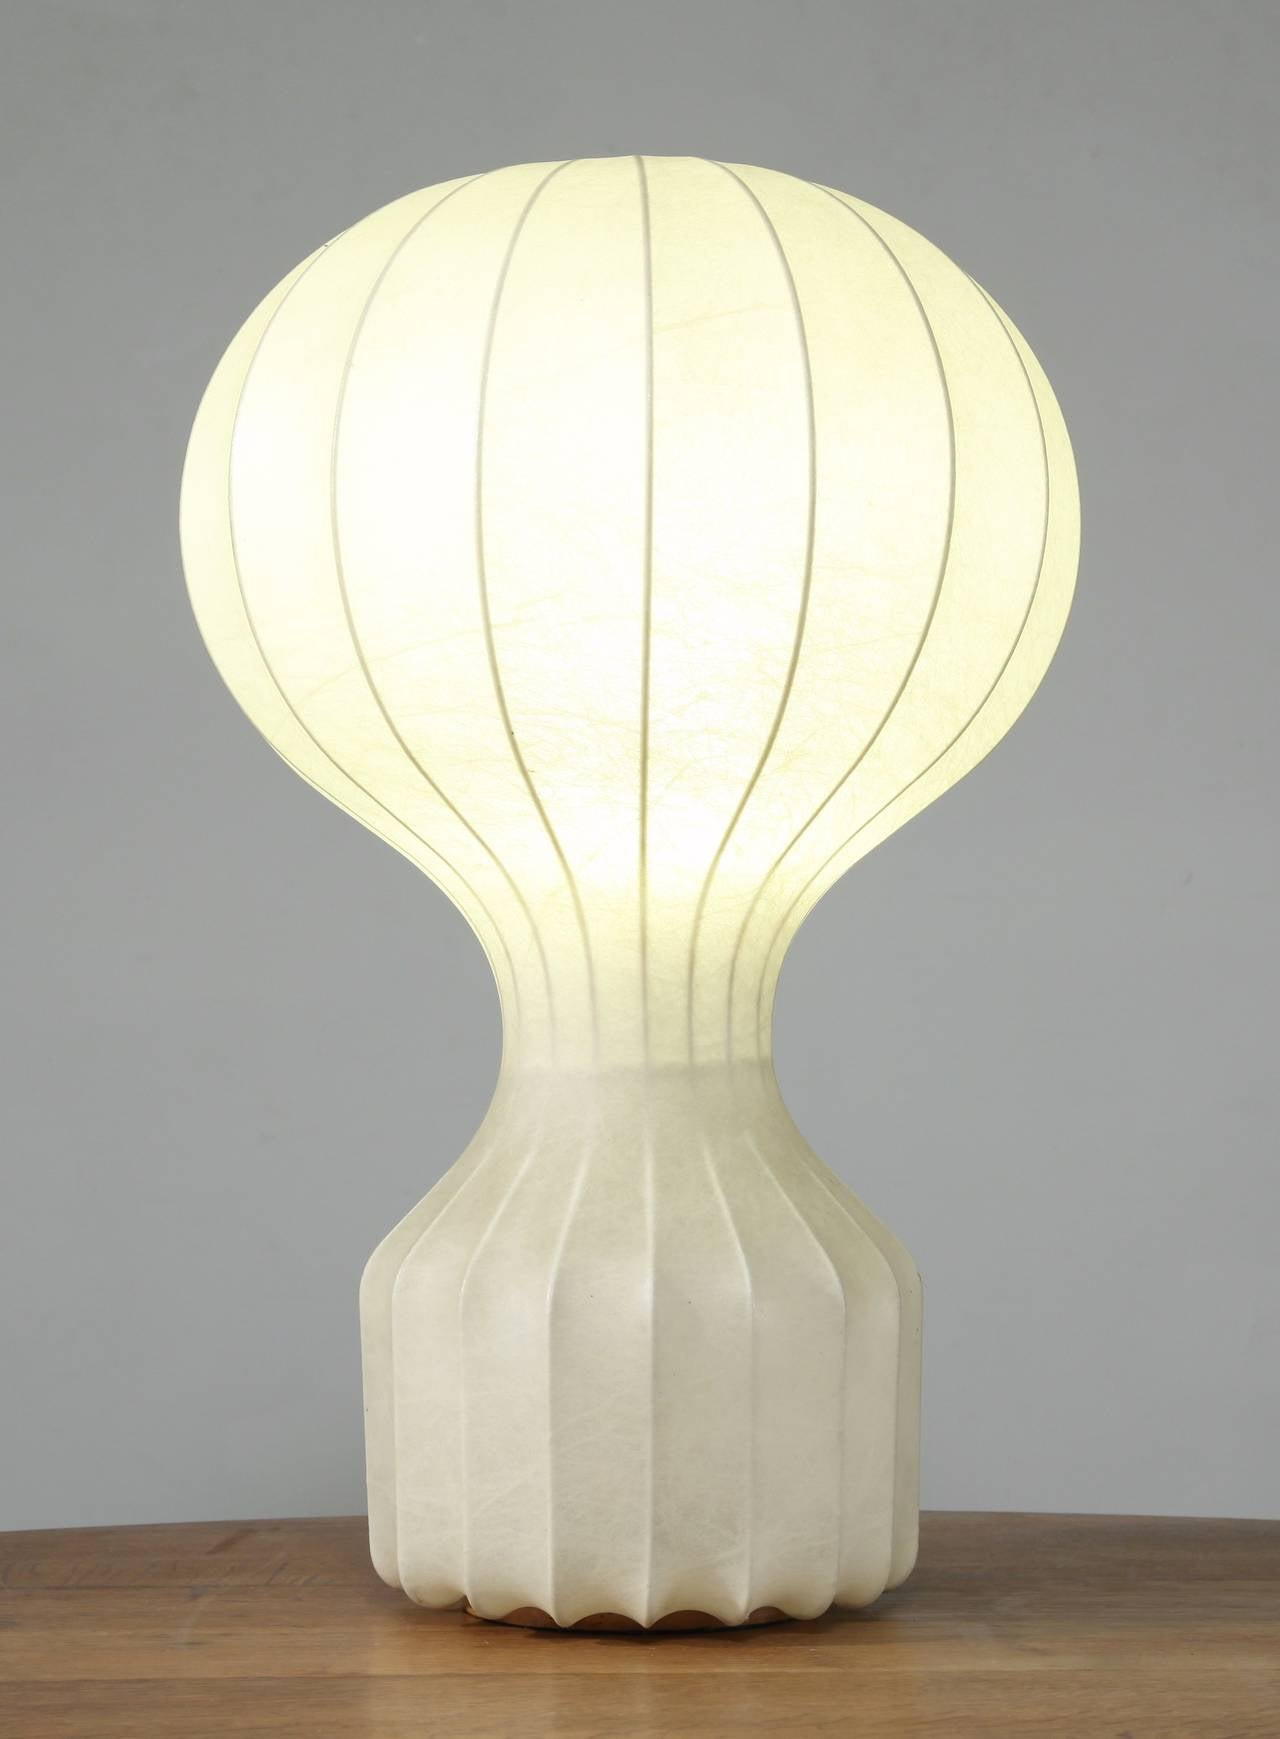 An architectural 'Gatto' table lamp by Achille and Pier Giacomo Castiglioni for Flos, Italy.  This lamp is made of a steel frame with a cocoon-like diffuser, in a shape that resembles a hot air balloon. It is an original 1960s edition and is labeled